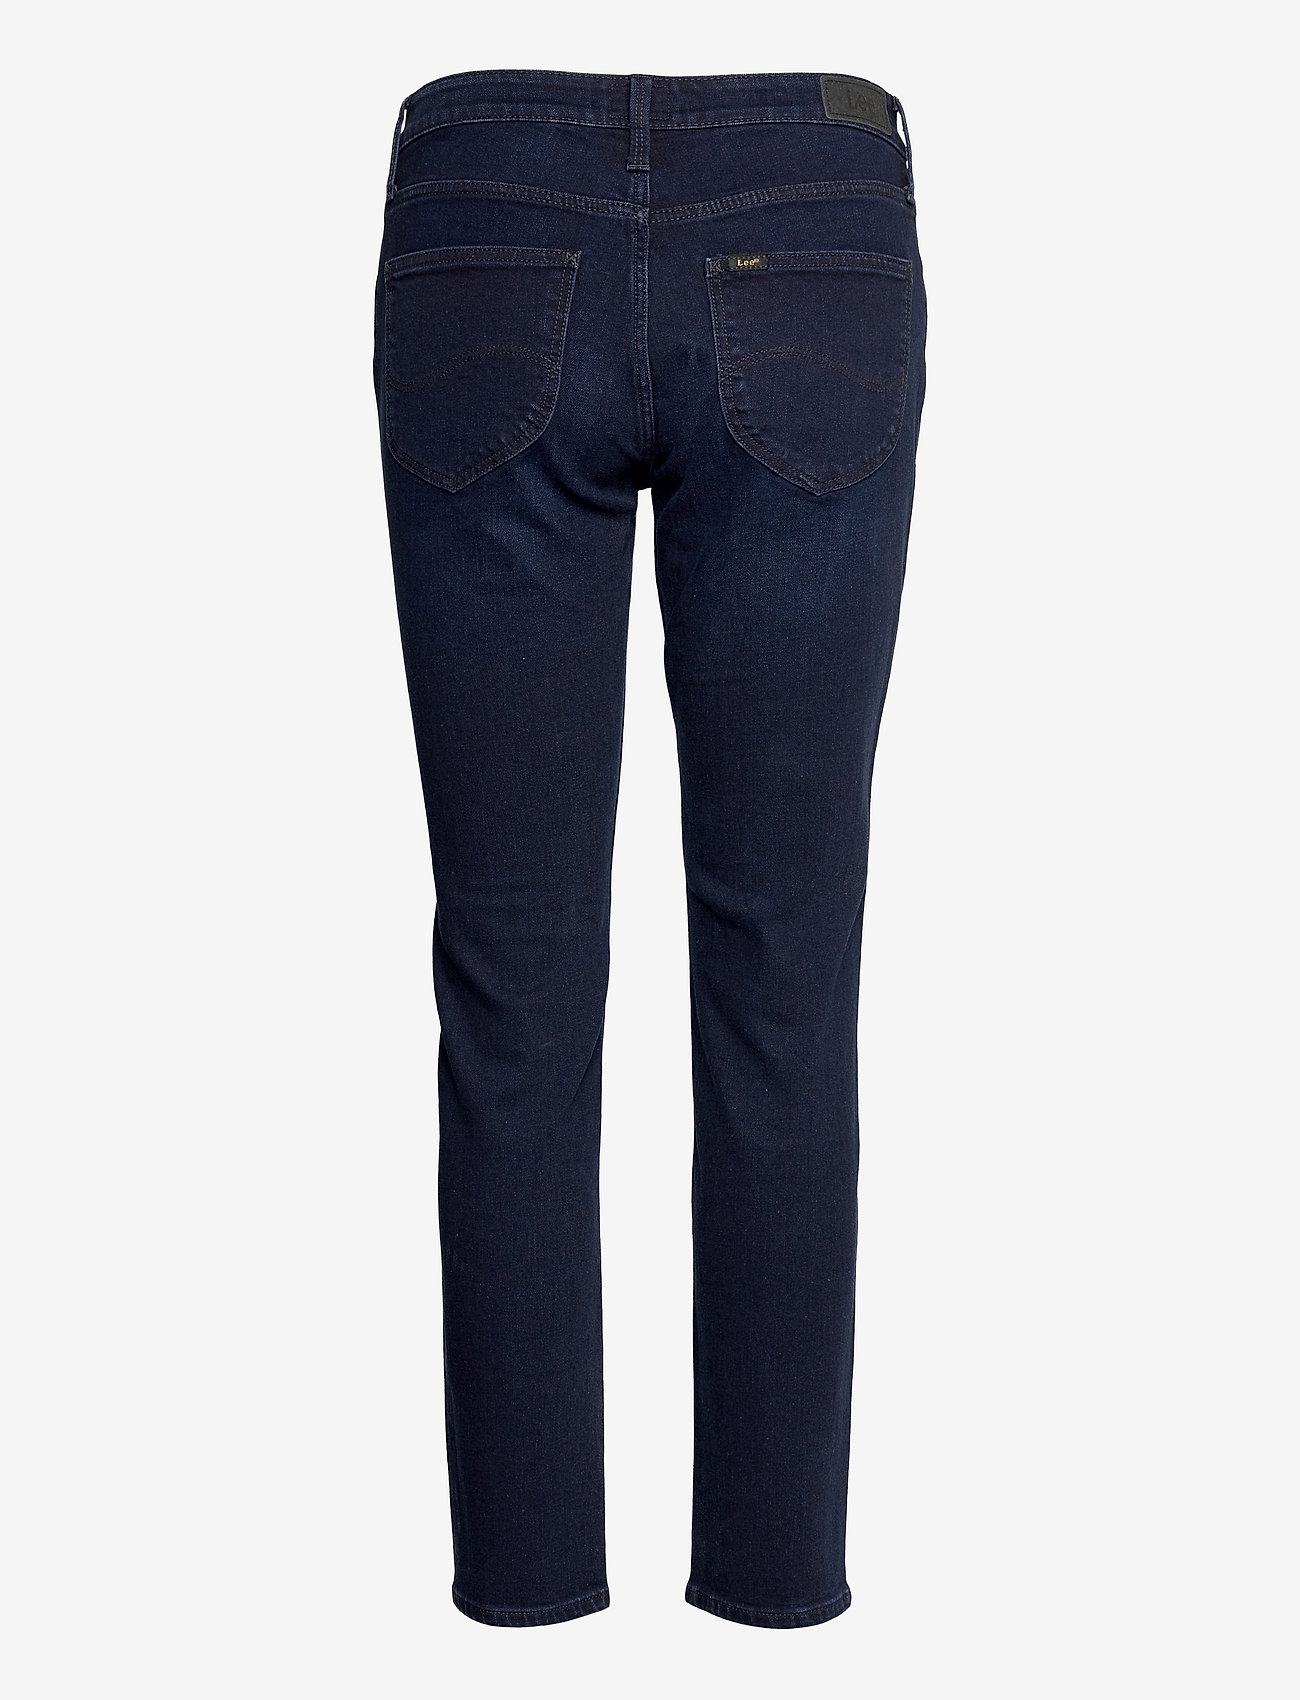 Lee Jeans - ELLY - slim jeans - washed cowes - 1